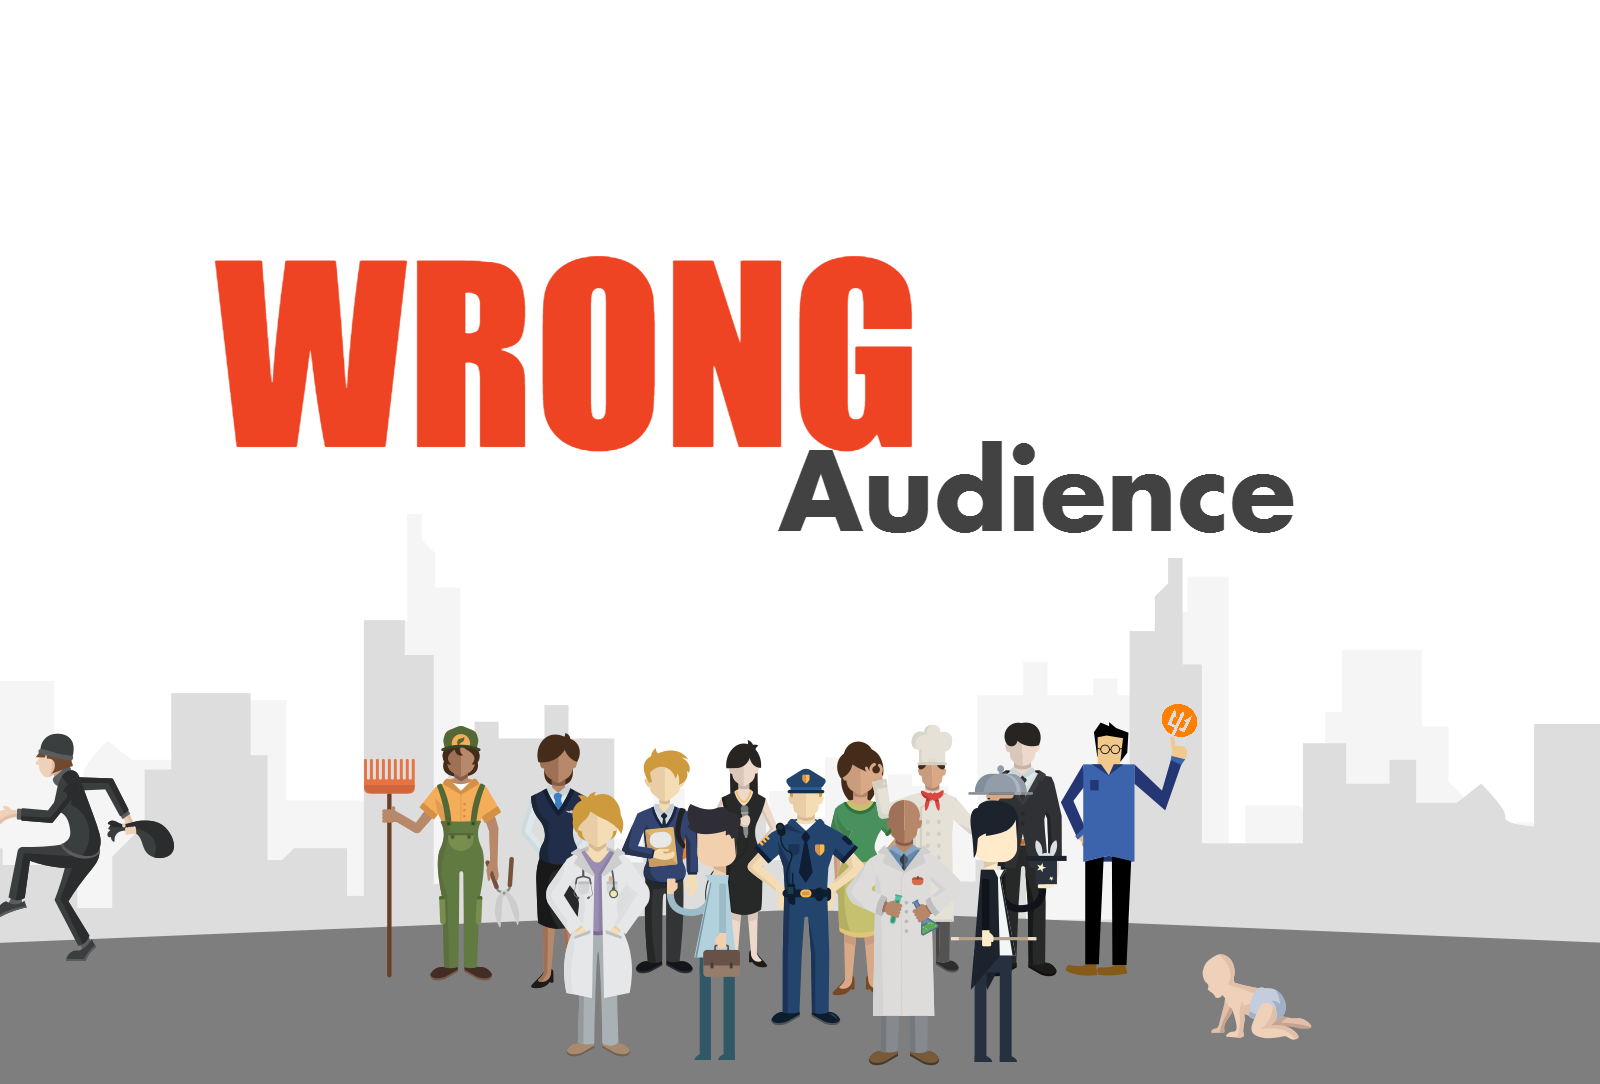 Make sure you are pointing to the right audience